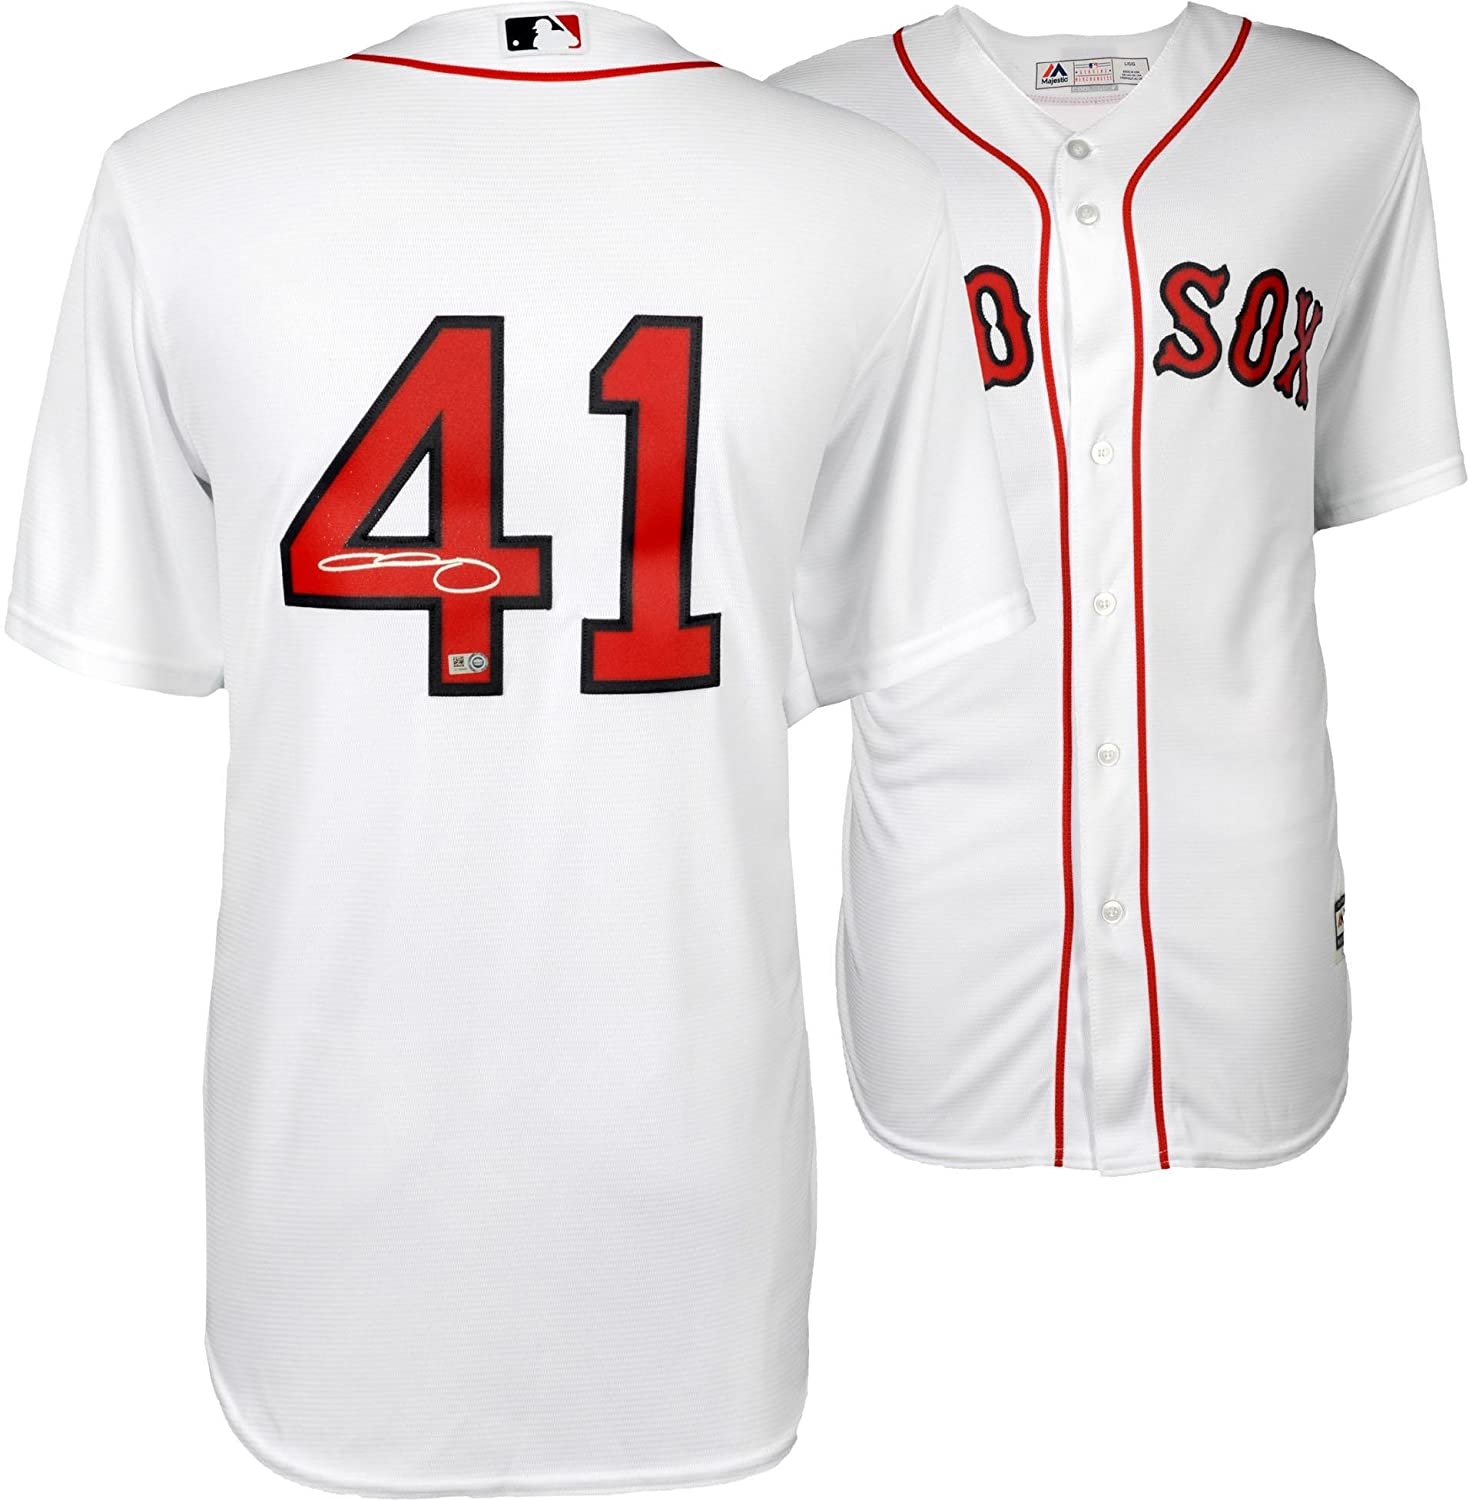 buy popular 7a5b8 cb922 Chris Sale Boston Red Sox Autographed Majestic White Replica ...